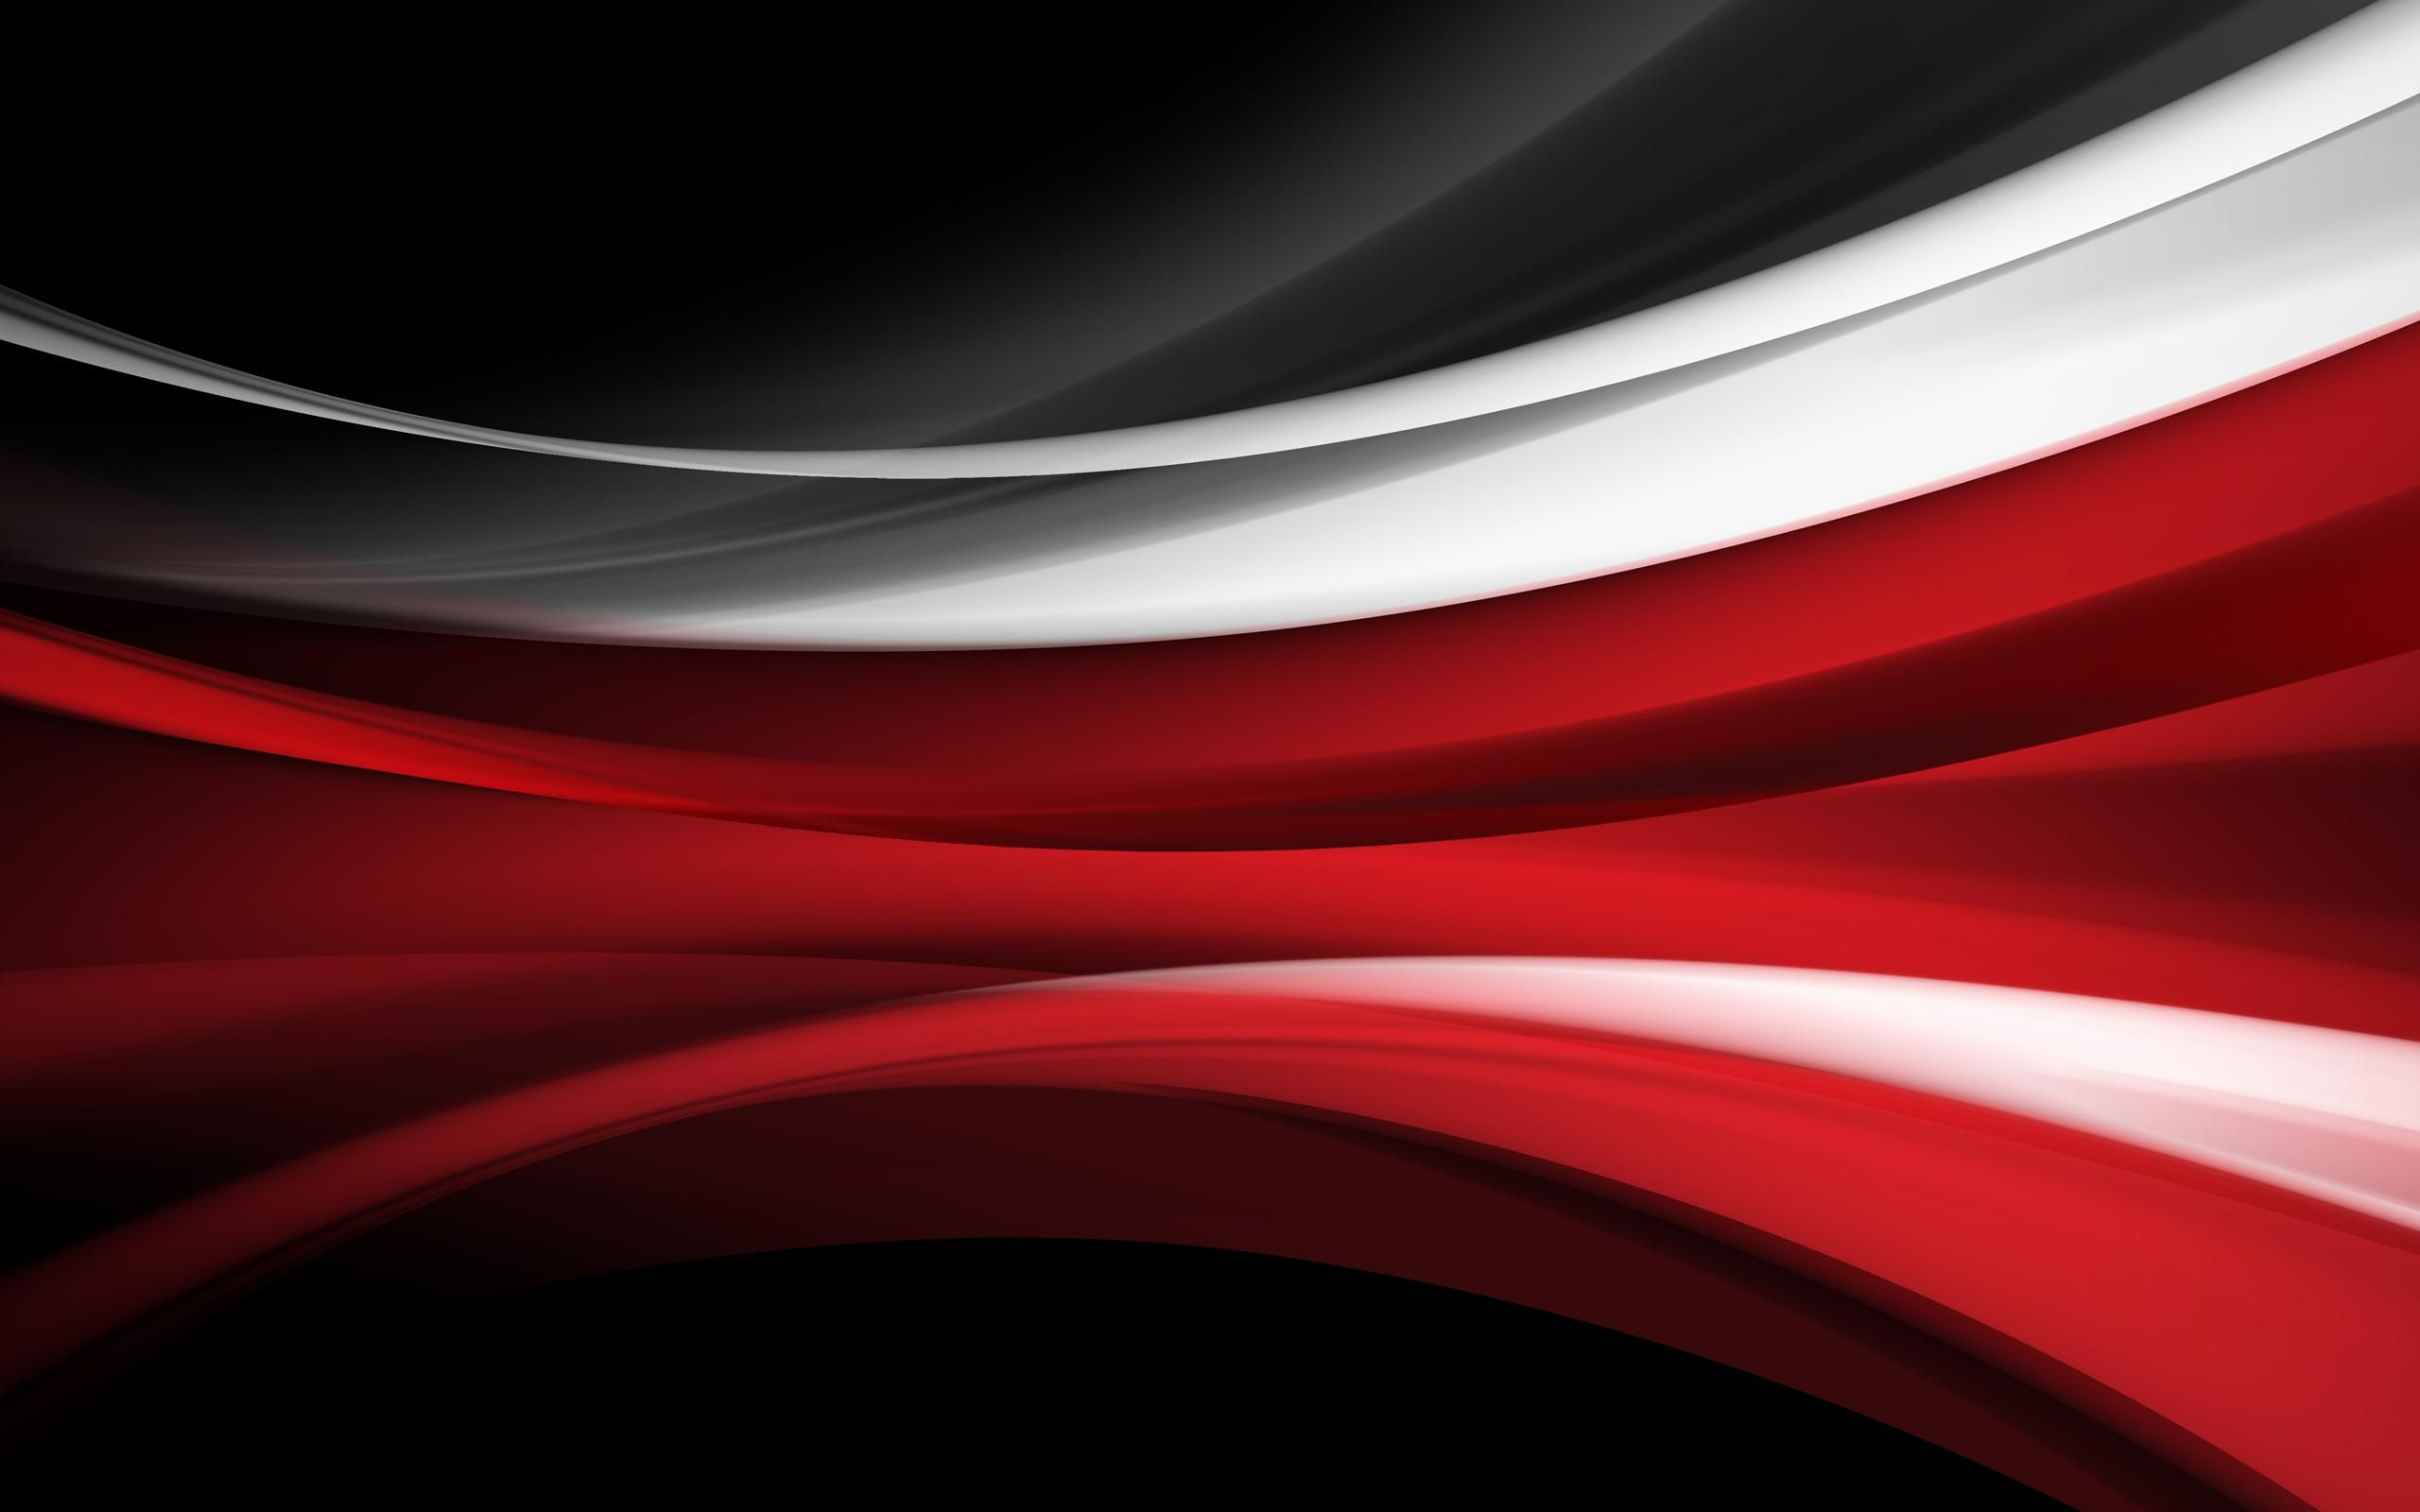 Red Computer Wallpapers Top Free Red Computer Backgrounds Wallpaperaccess